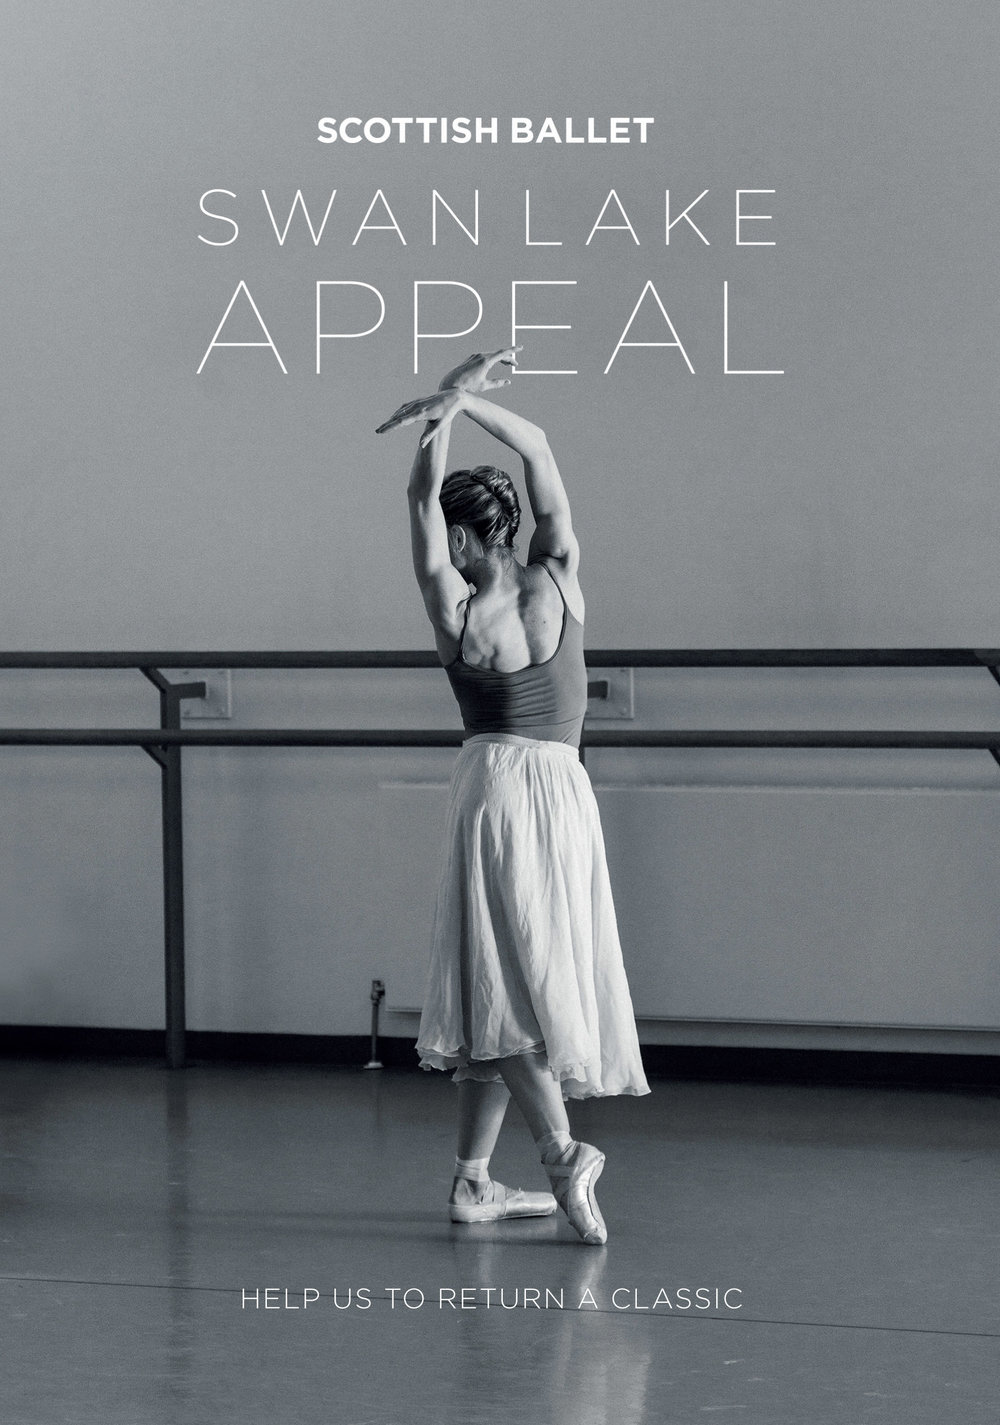 Scottish Ballet Swan Lake Appeal flyer